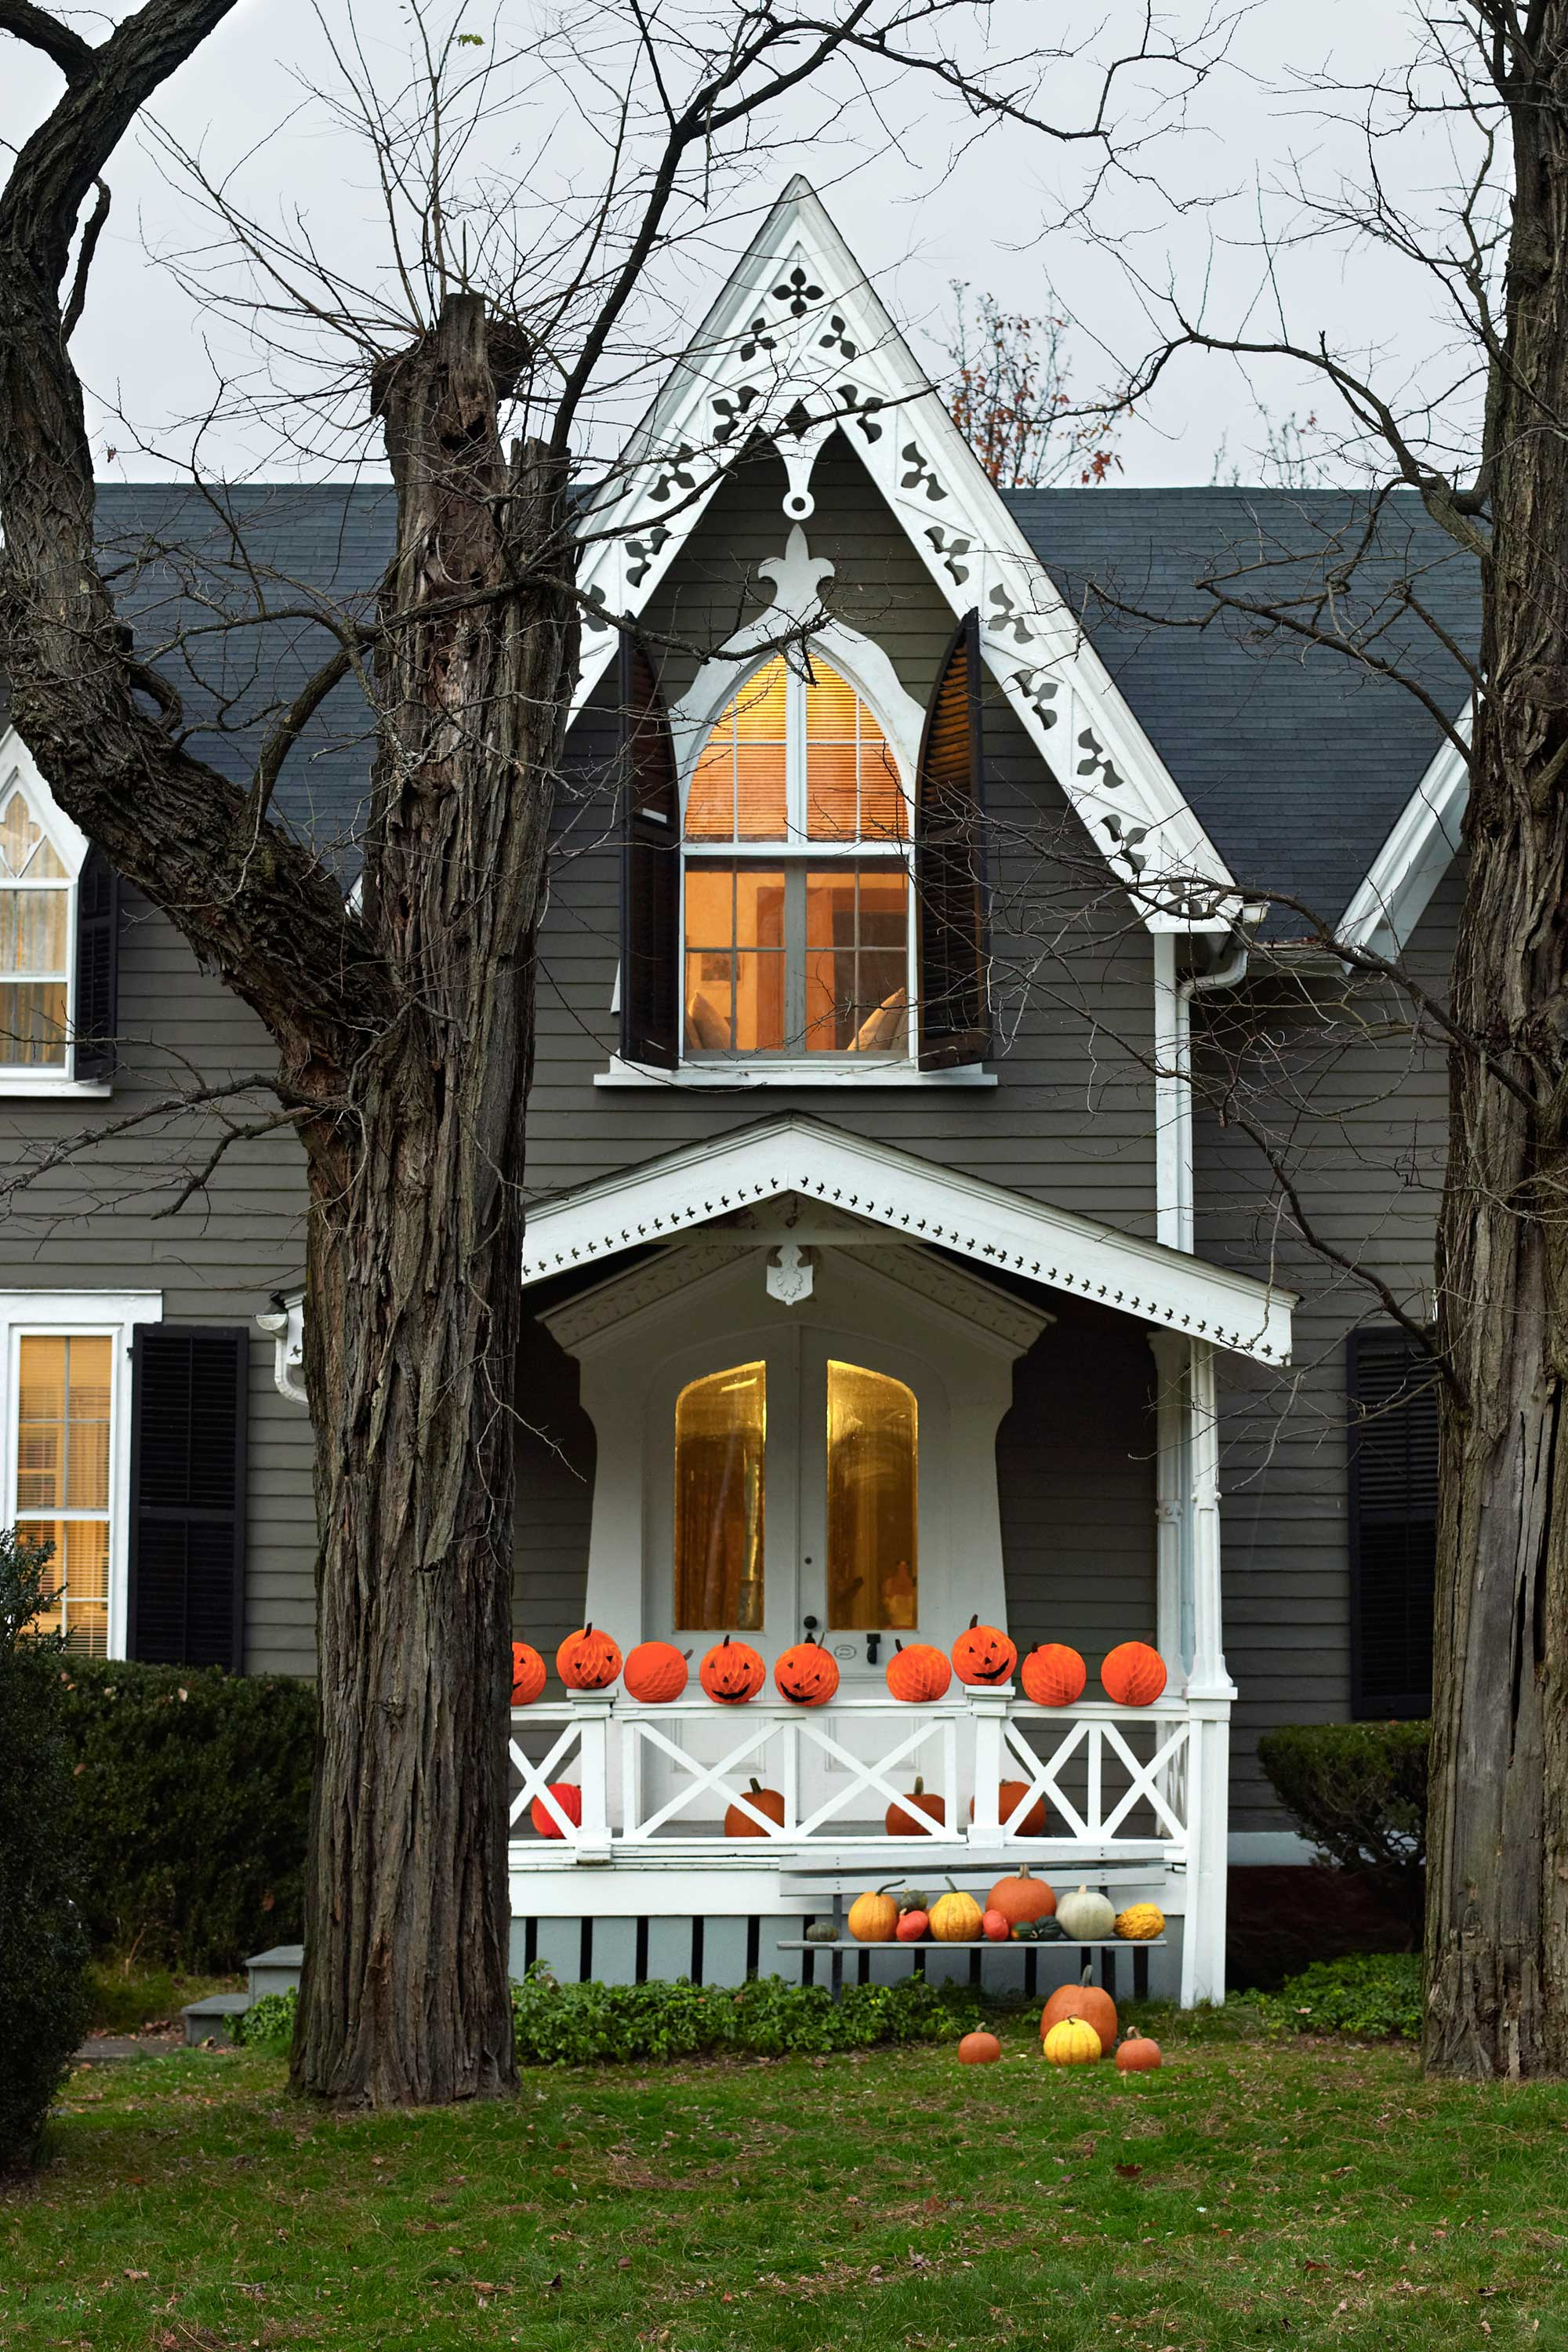 30+ Best Outdoor Halloween Decoration Ideas - Easy Halloween Yard and Porch  Decor